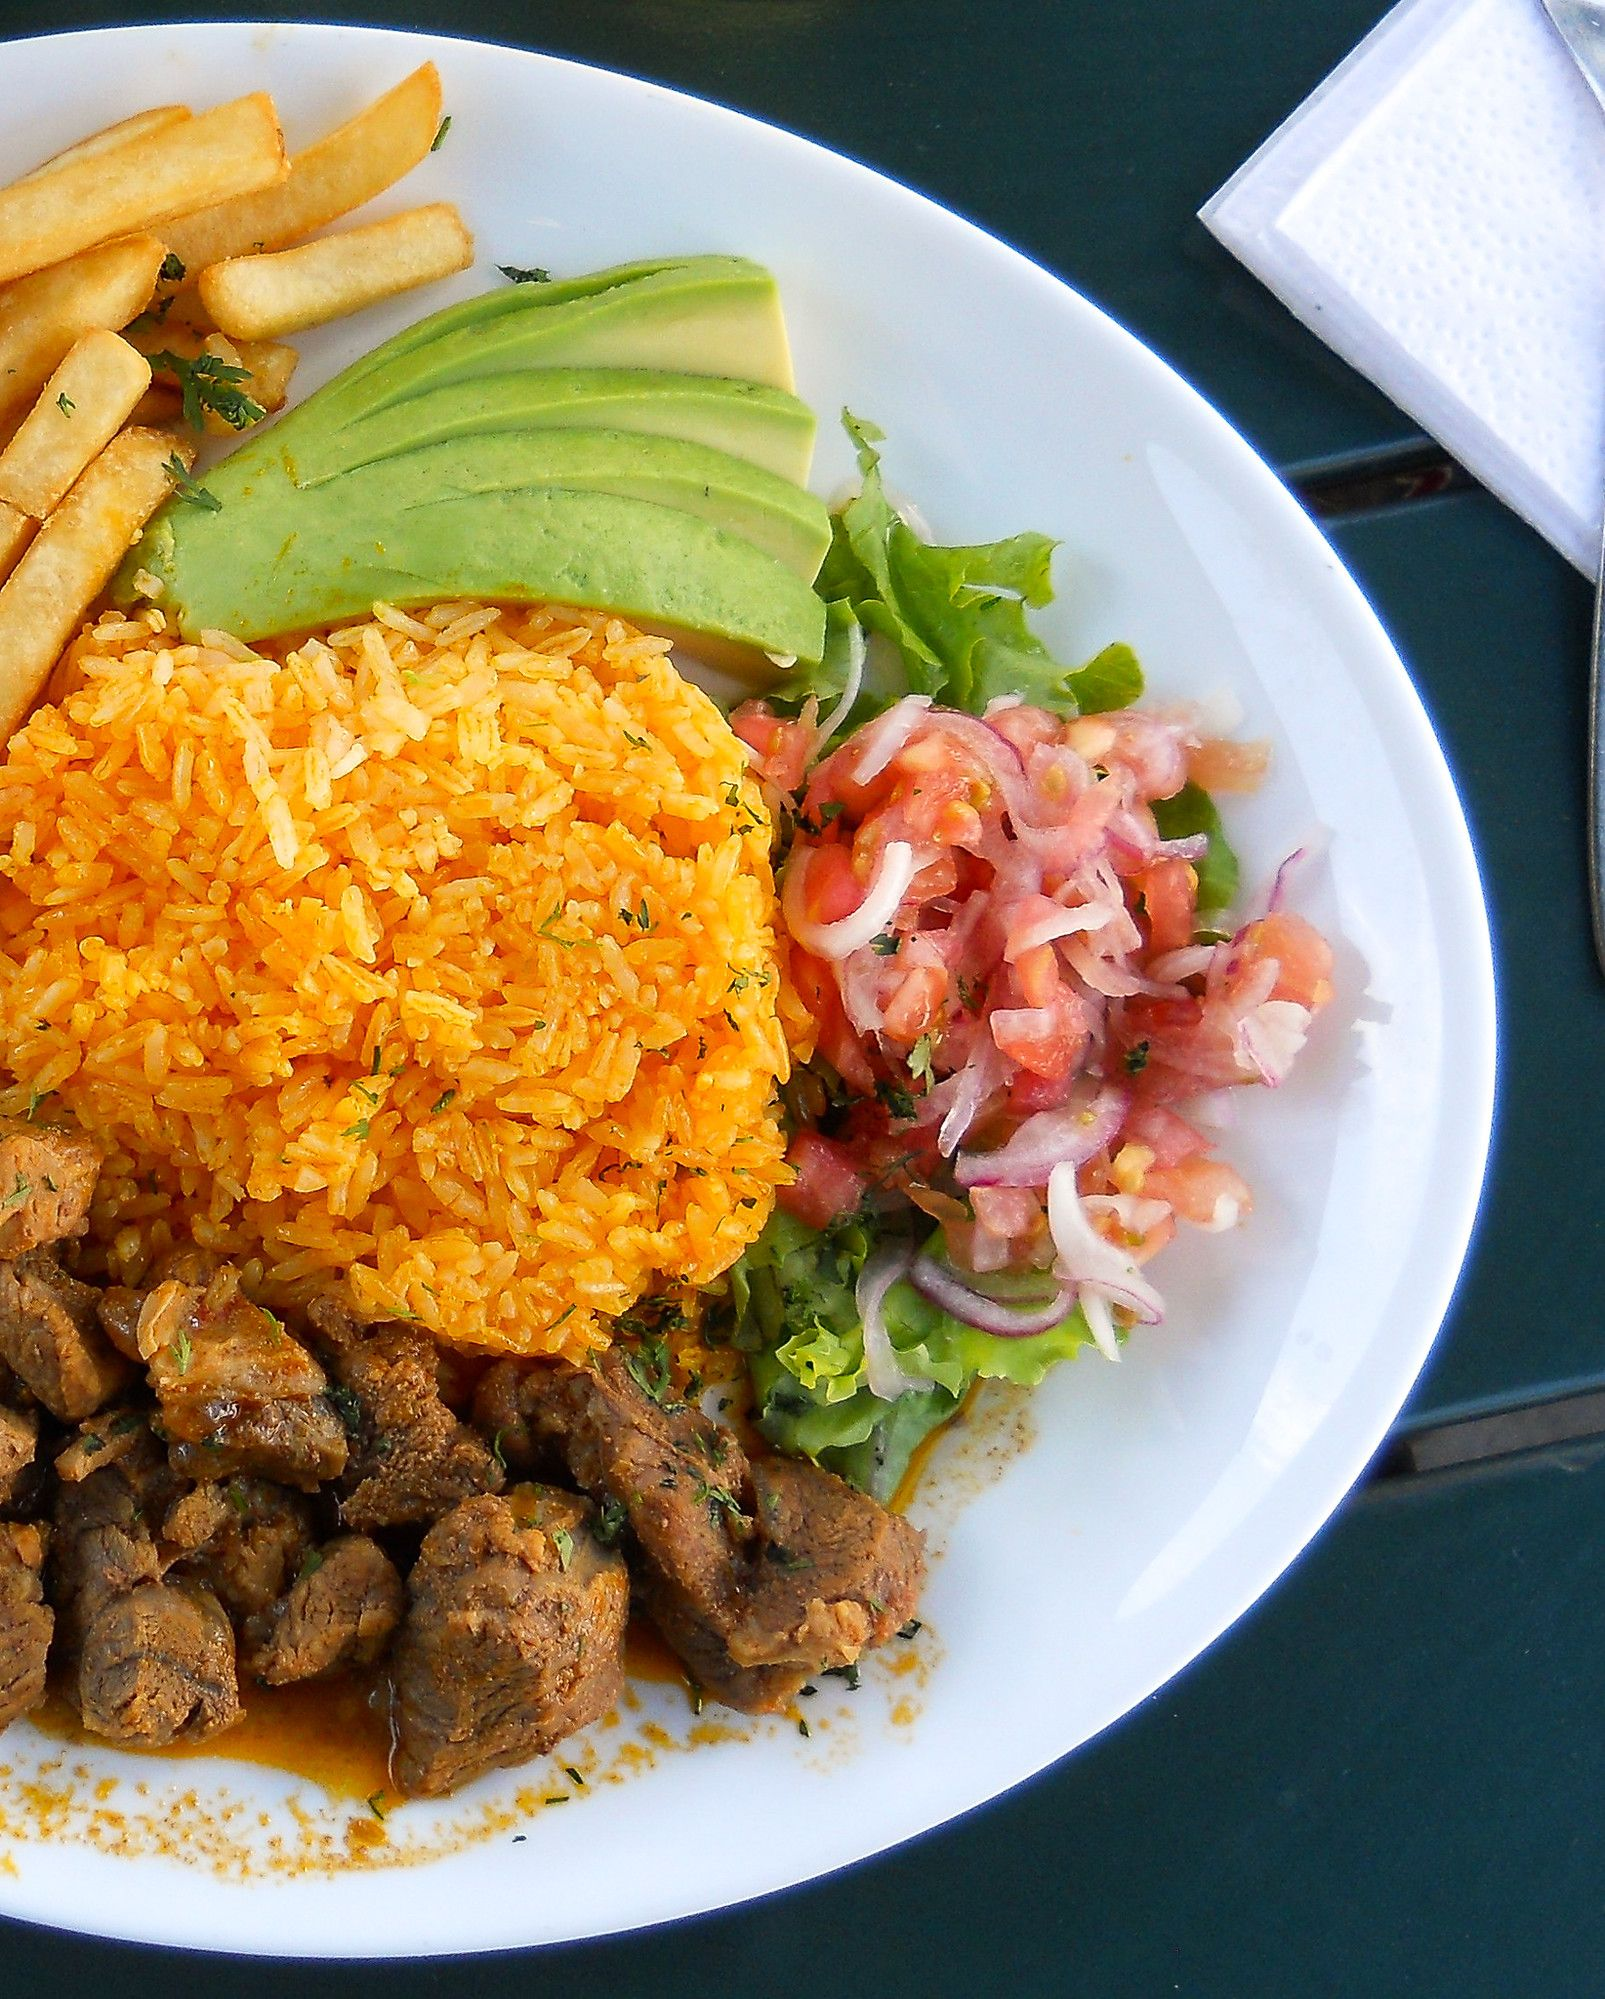 Seco de chivo is a goat stew and just one of many ecuadorian foods seco de chivo is a goat stew and just one of many ecuadorian foods to eat forumfinder Gallery